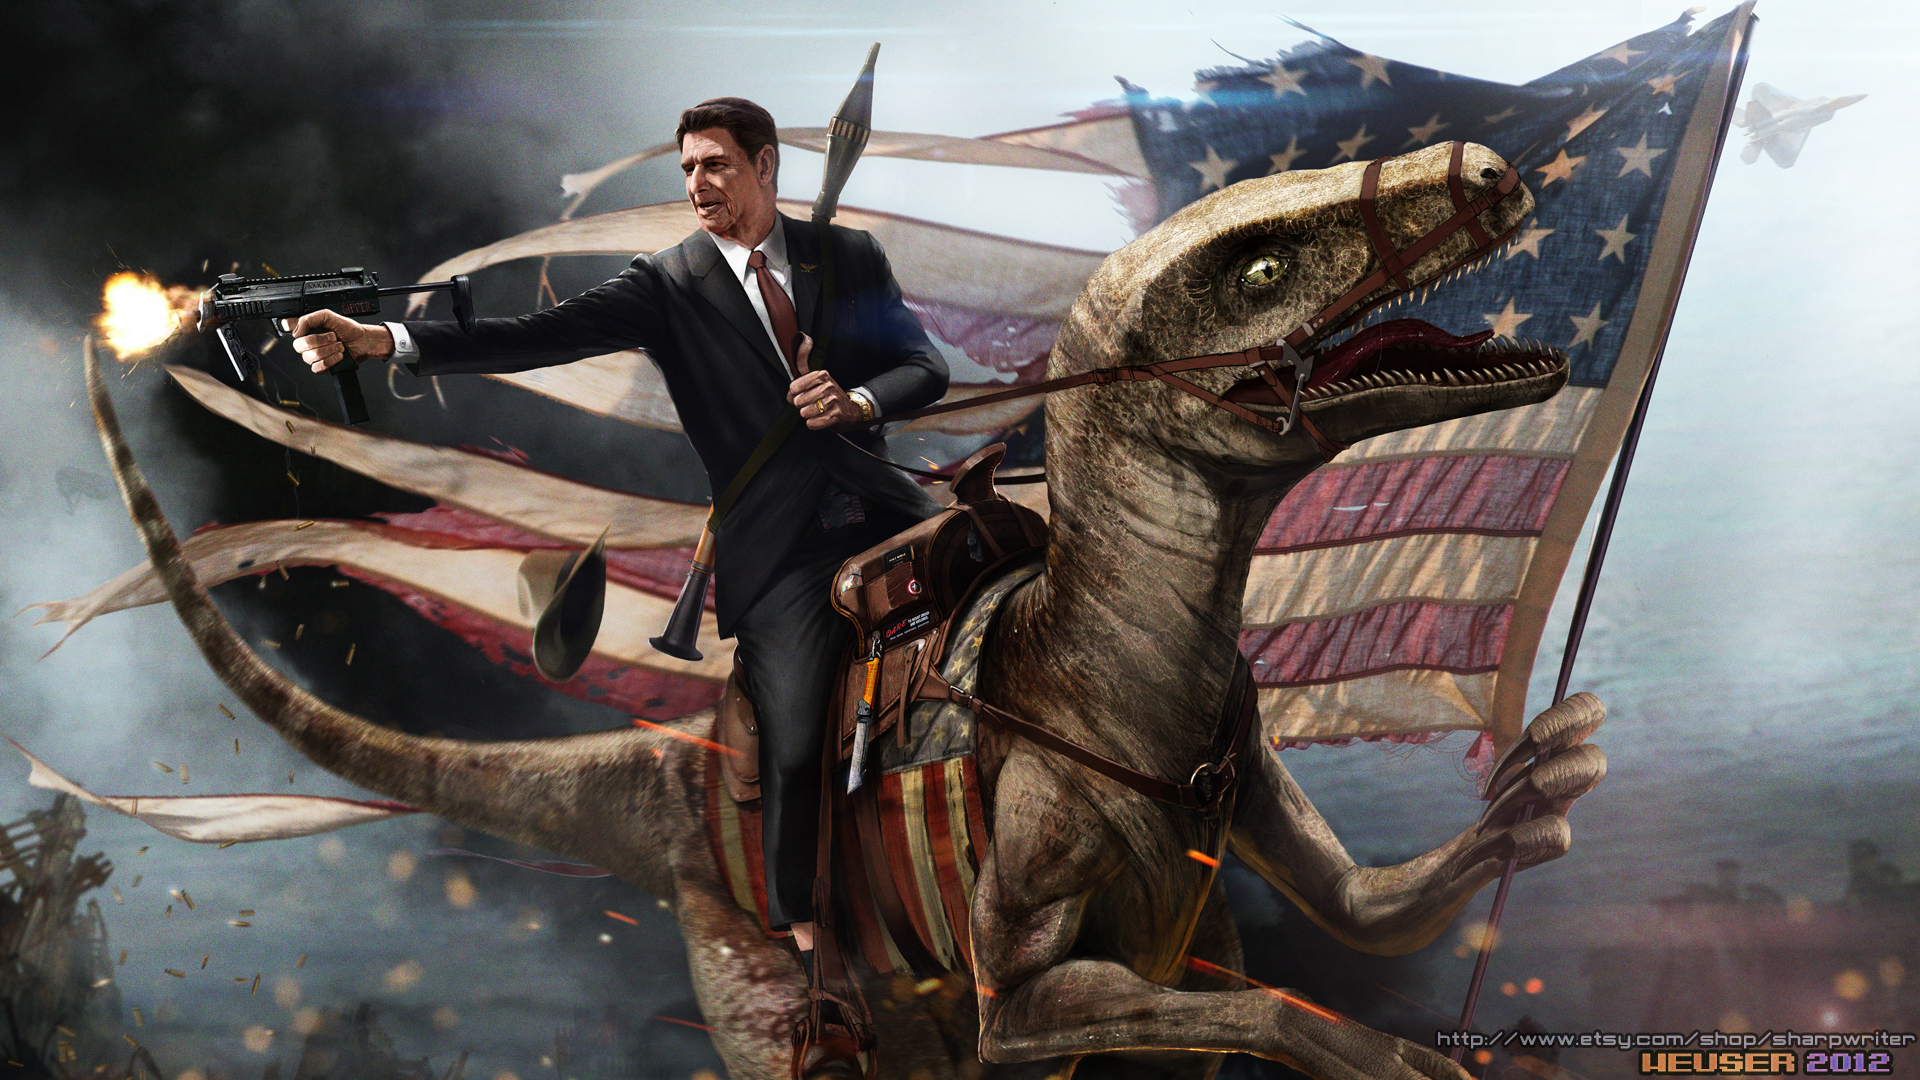 Ronald Reagan Riding a Velociraptor